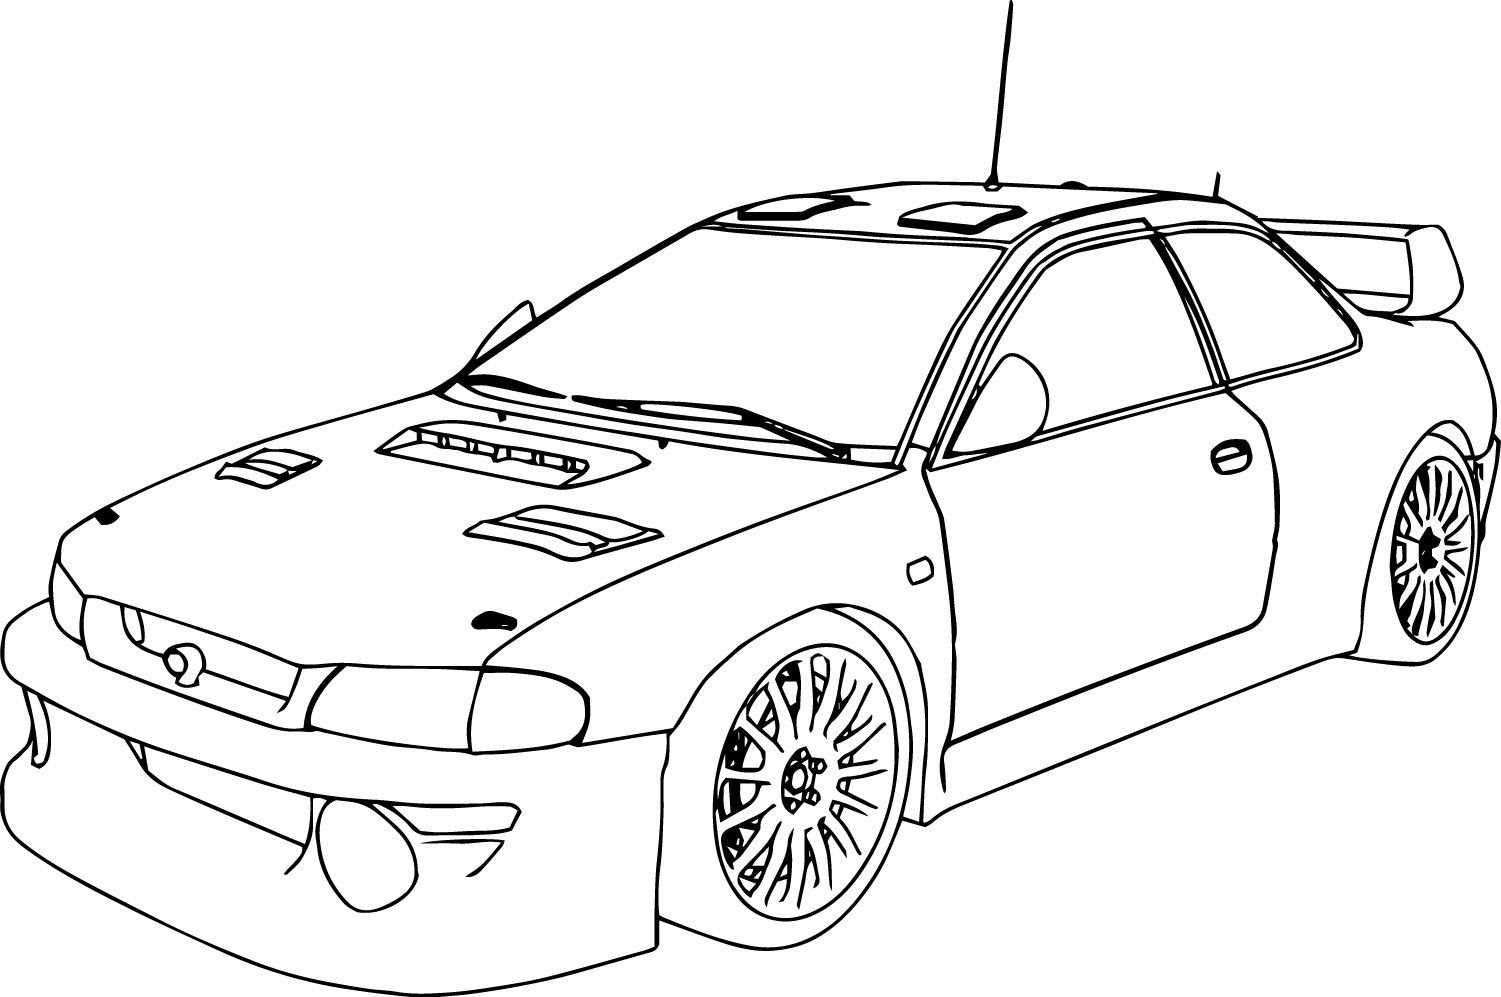 Download Indy Car Coloring Pages - Coloring Home